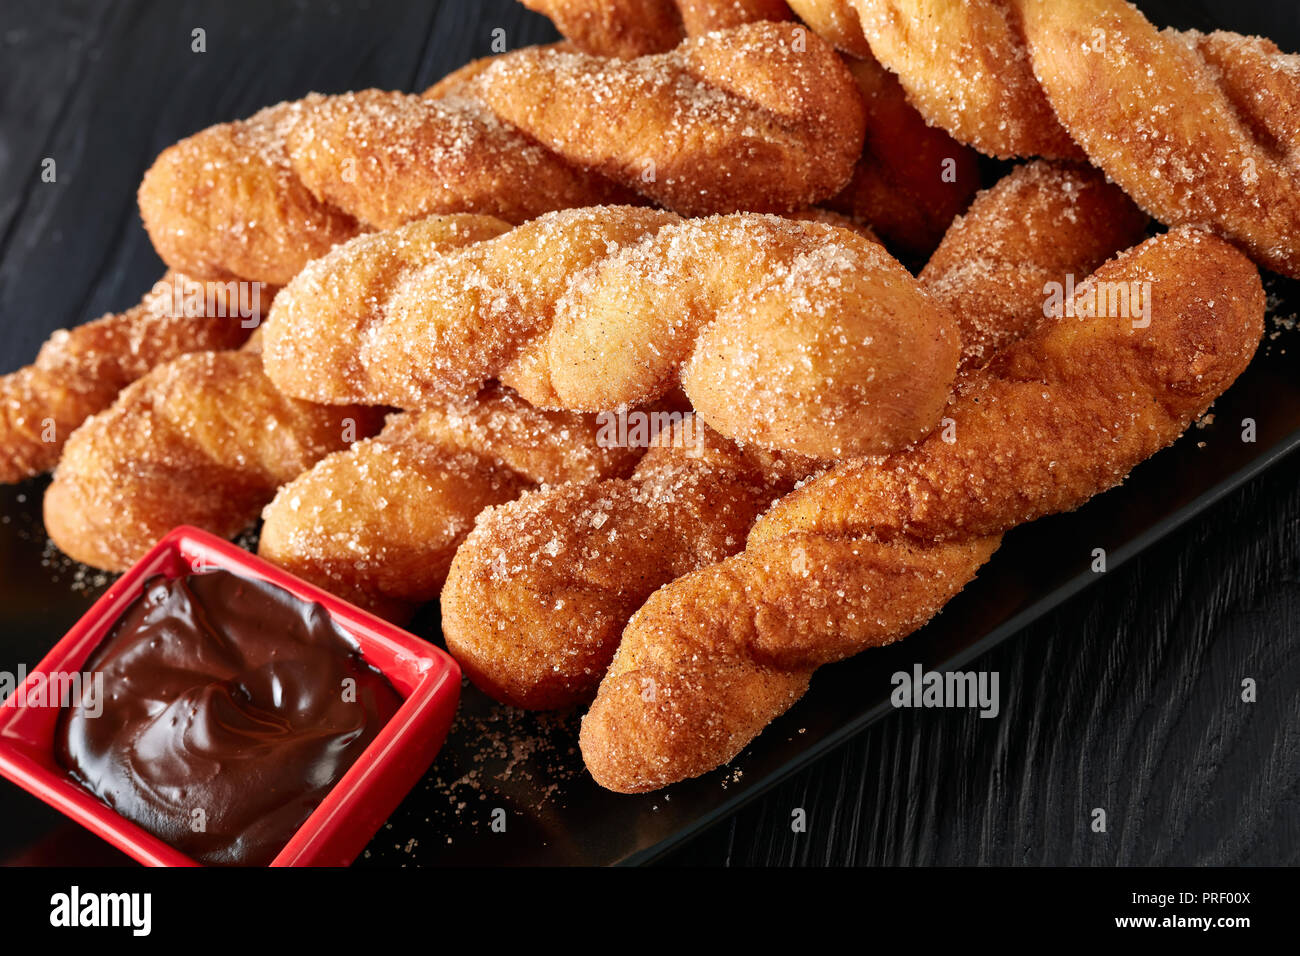 Chocolate Twist Pastry Stock Photos & Chocolate Twist Pastry